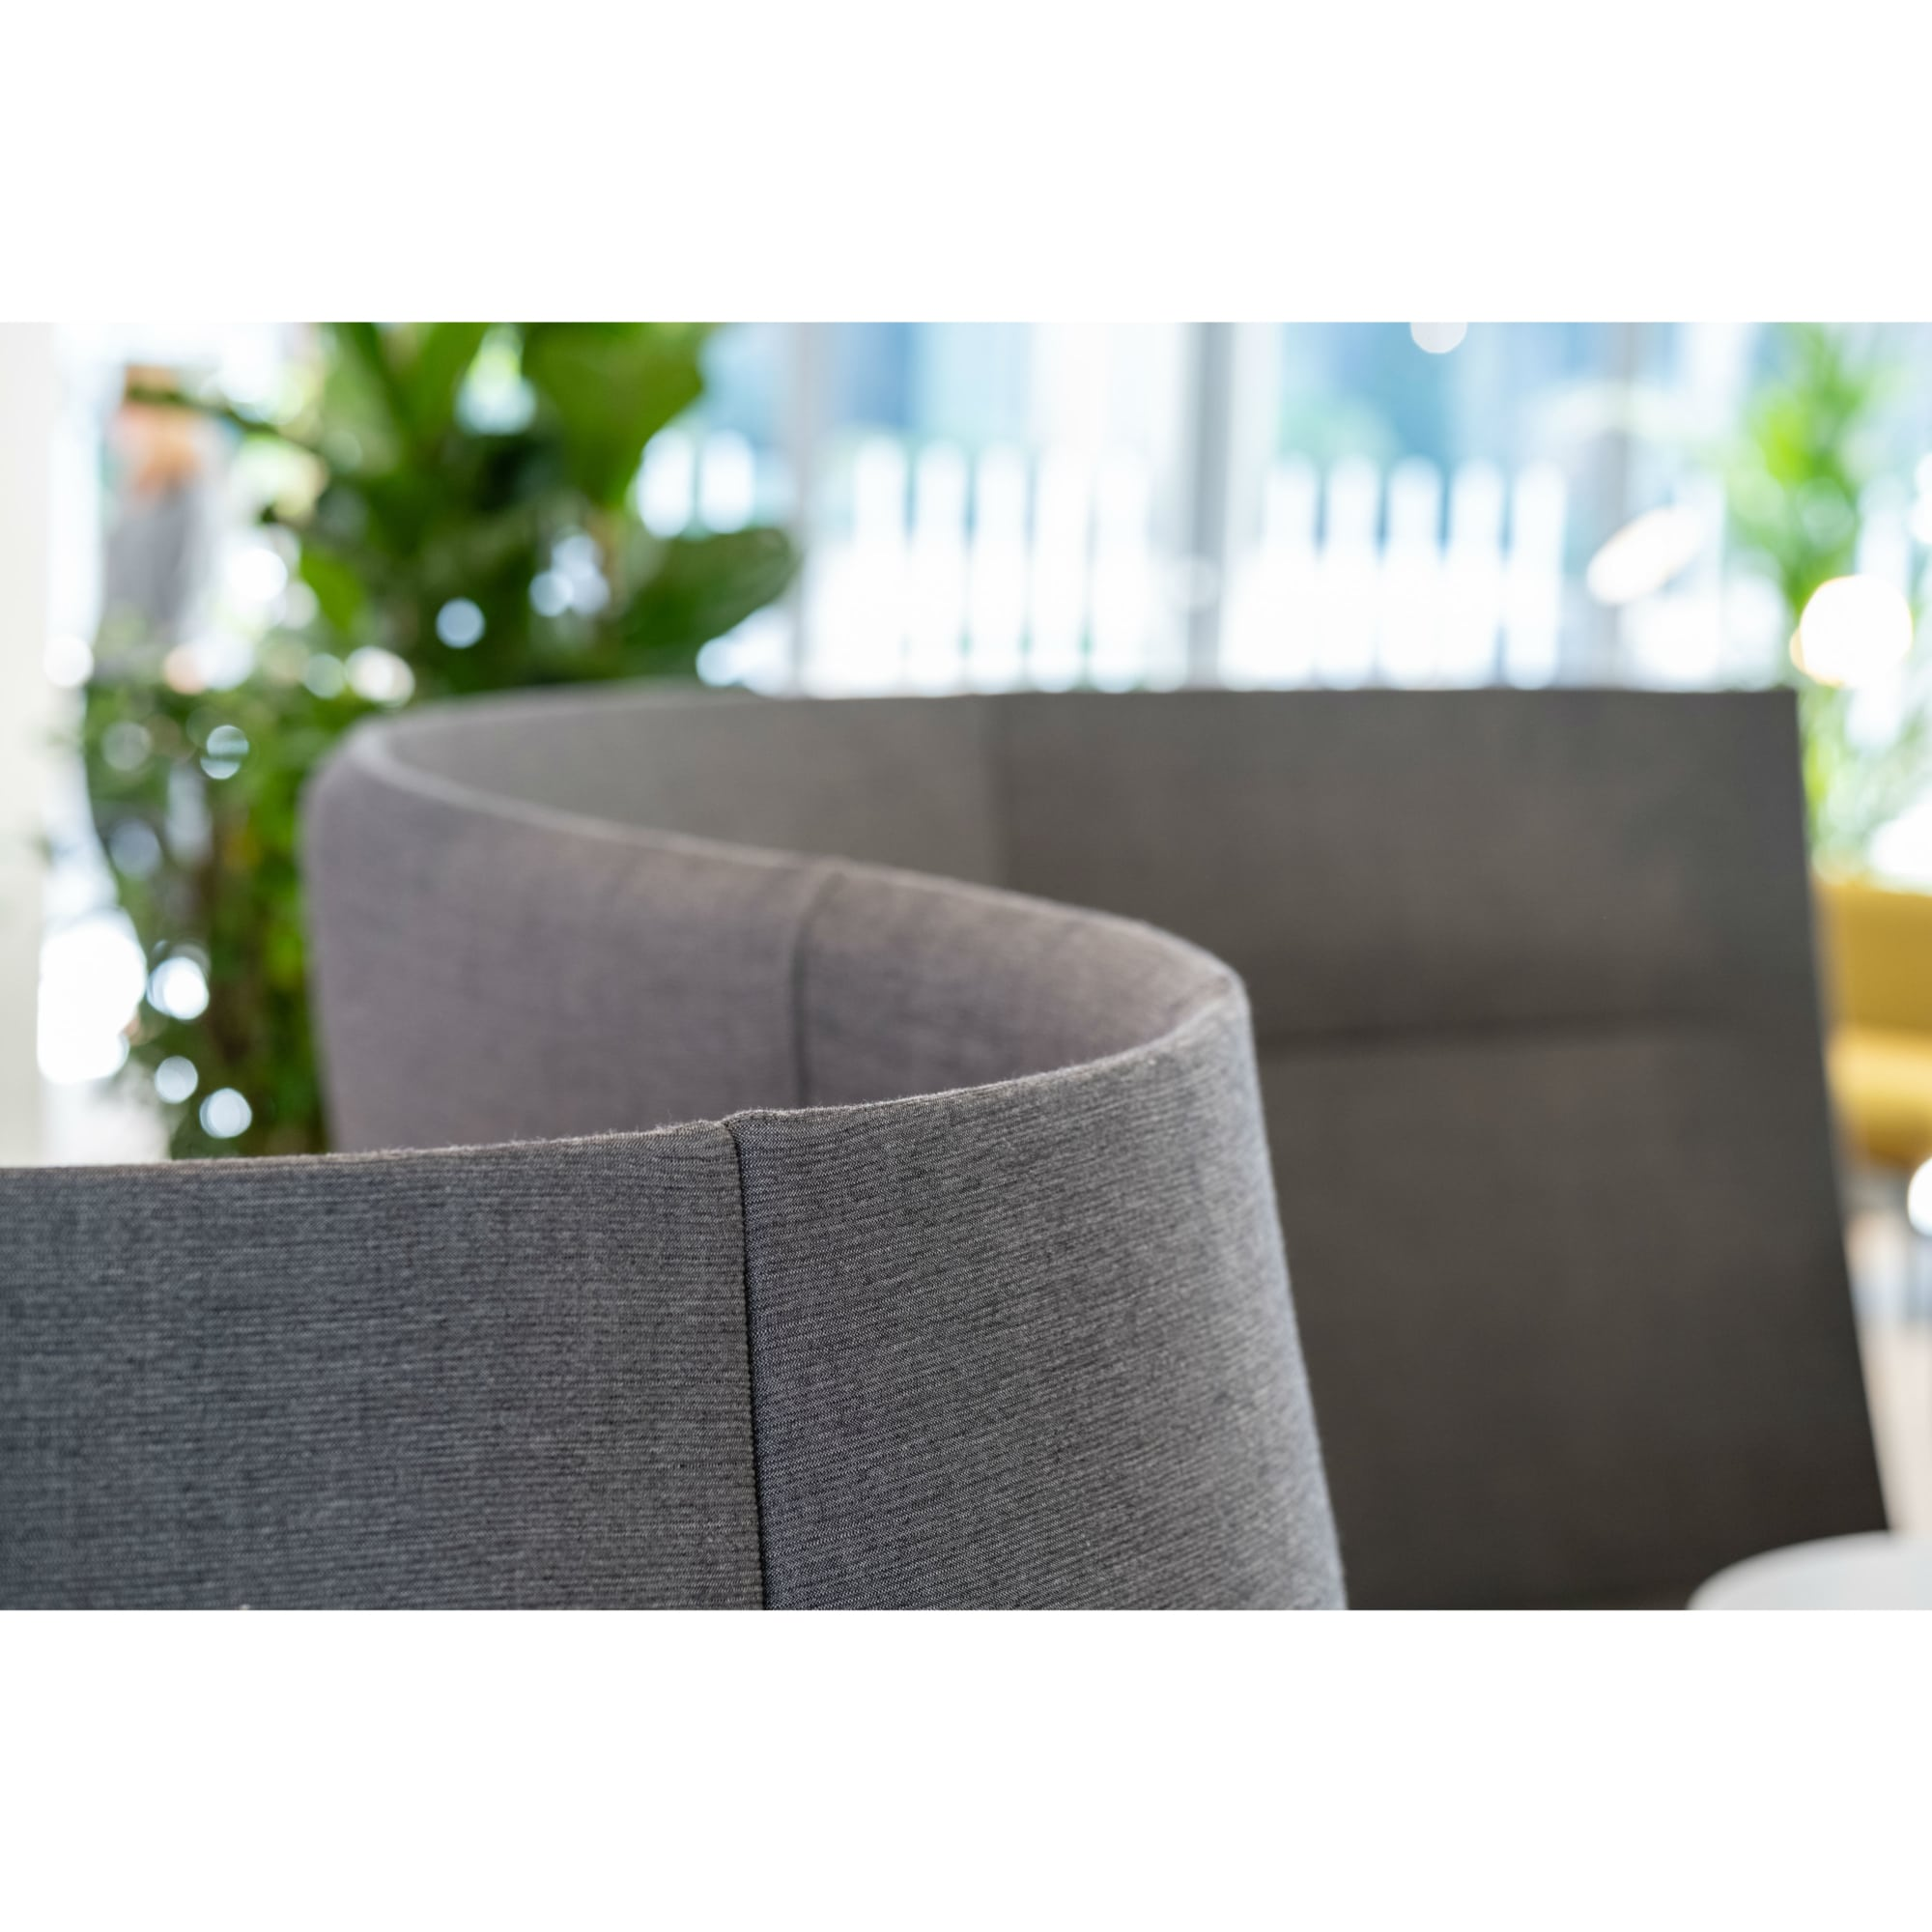 Modern gray collaborative seating